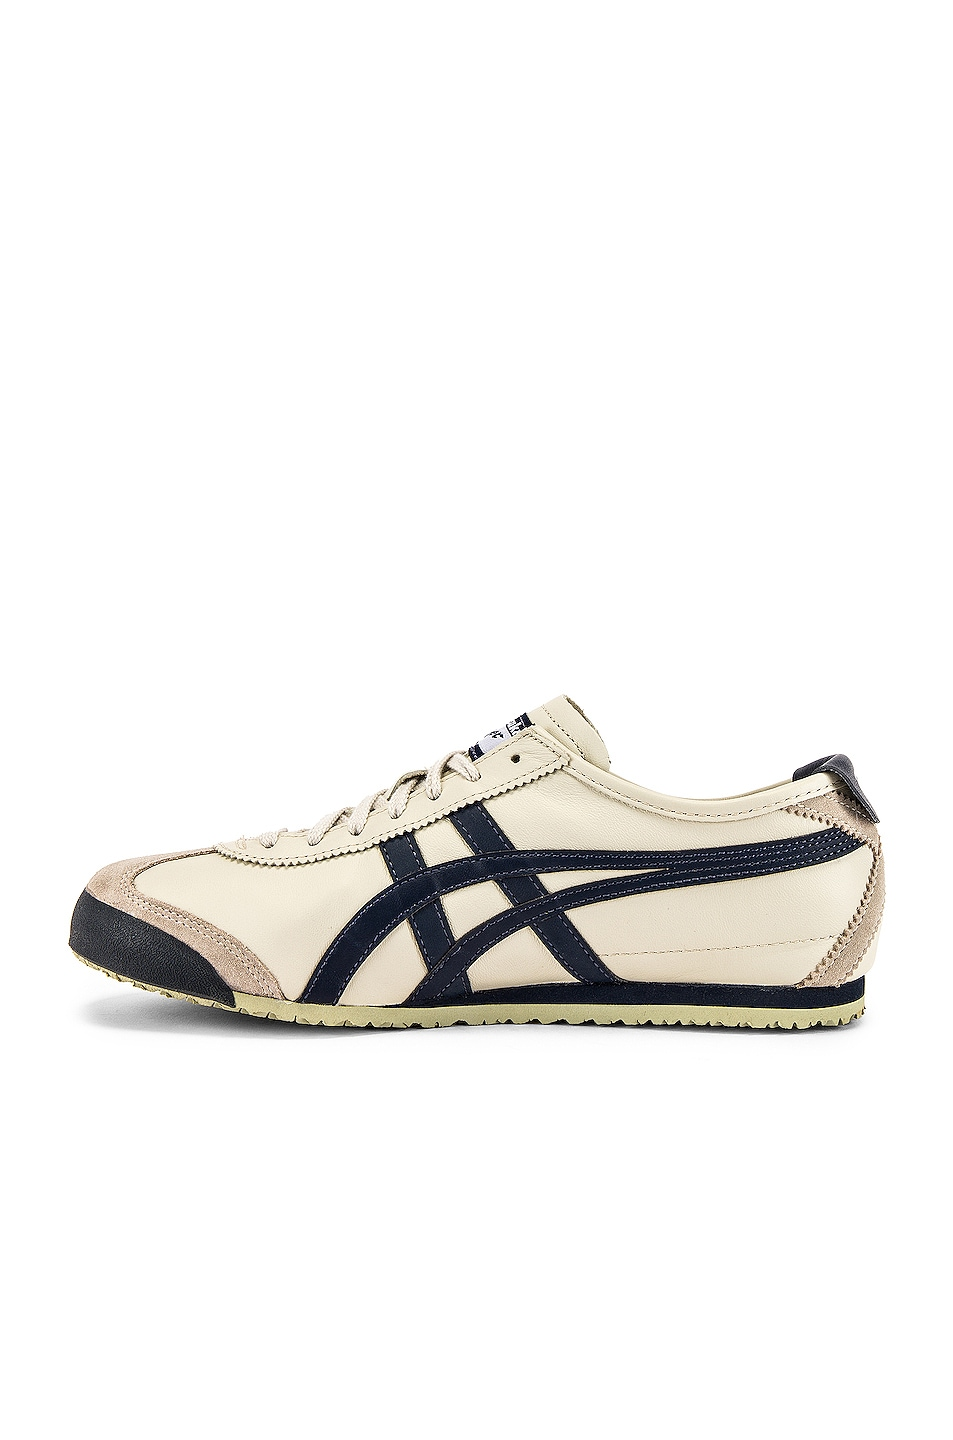 Image 5 of Onitsuka Tiger Mexico 66 in Birch & Indian Ink & Latte